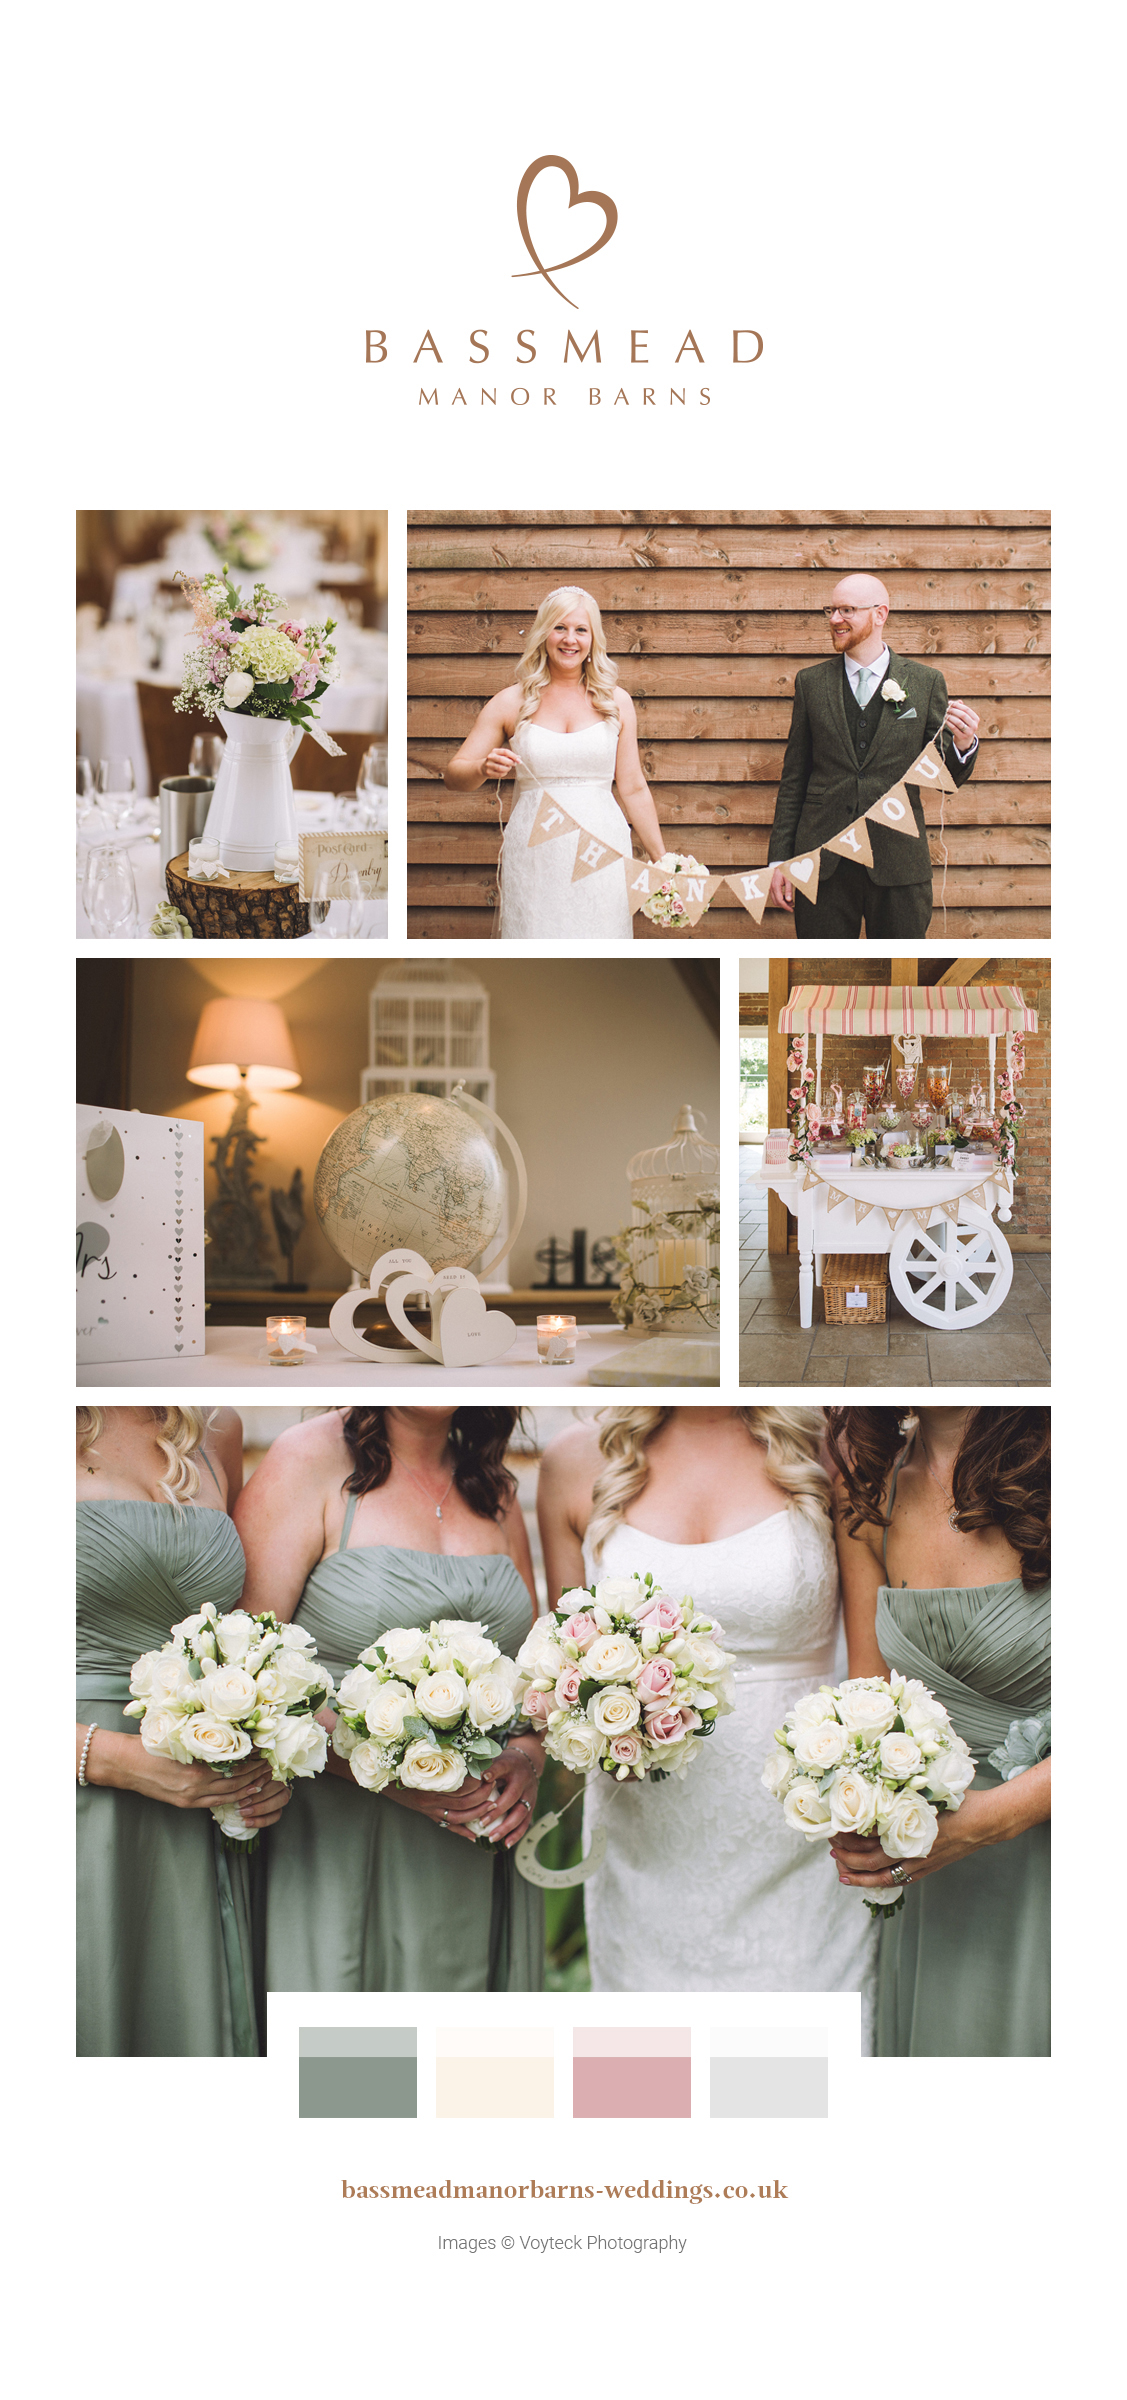 Jenny and Phil's real life wedding at Bassmead Manor Barns